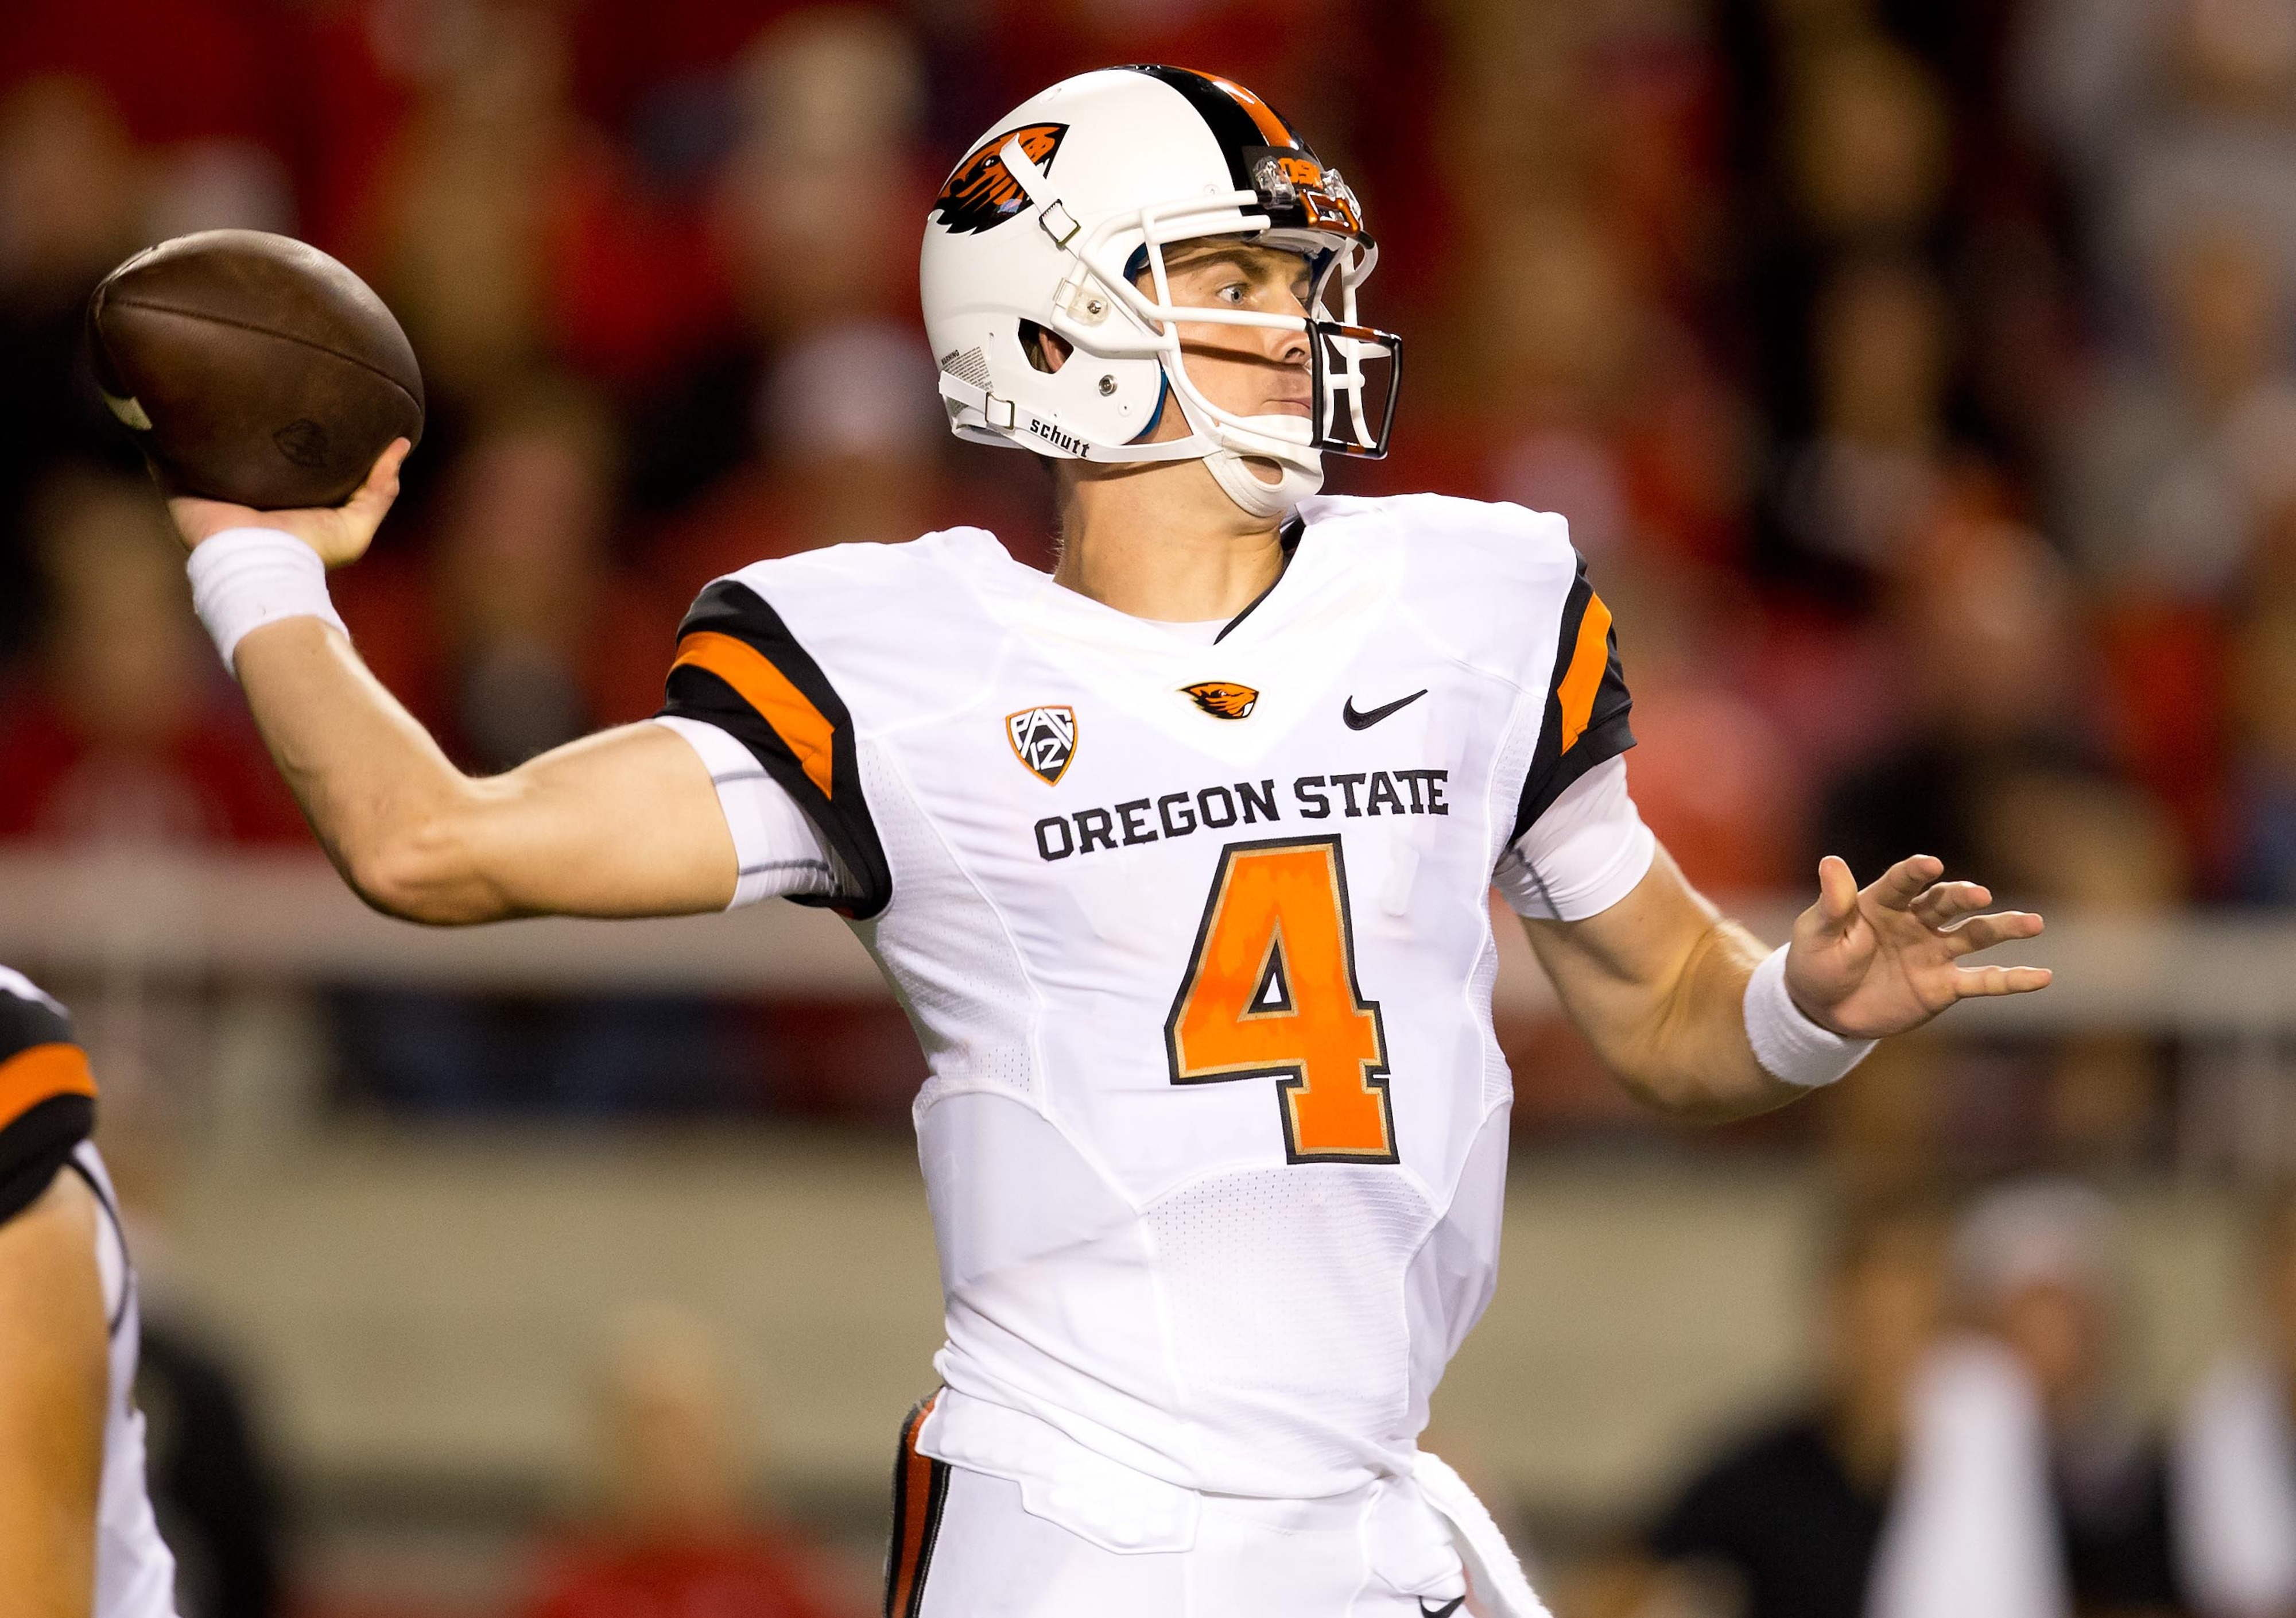 Sean Mannion and the Beavers hope to repeat last year's performance.